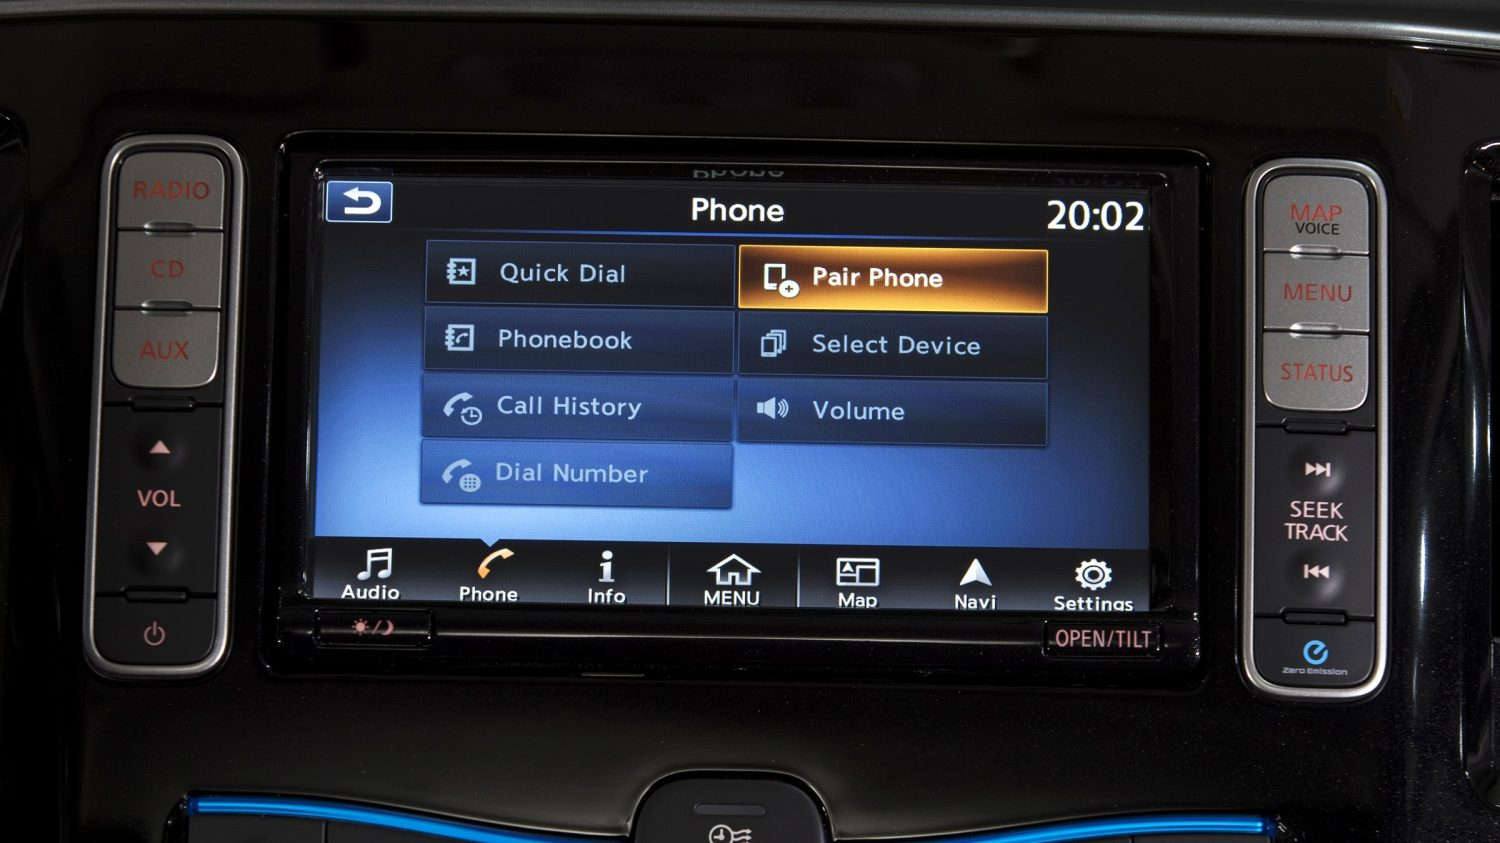 New Nissan e-NV200 nissanconnect screen of phone integration